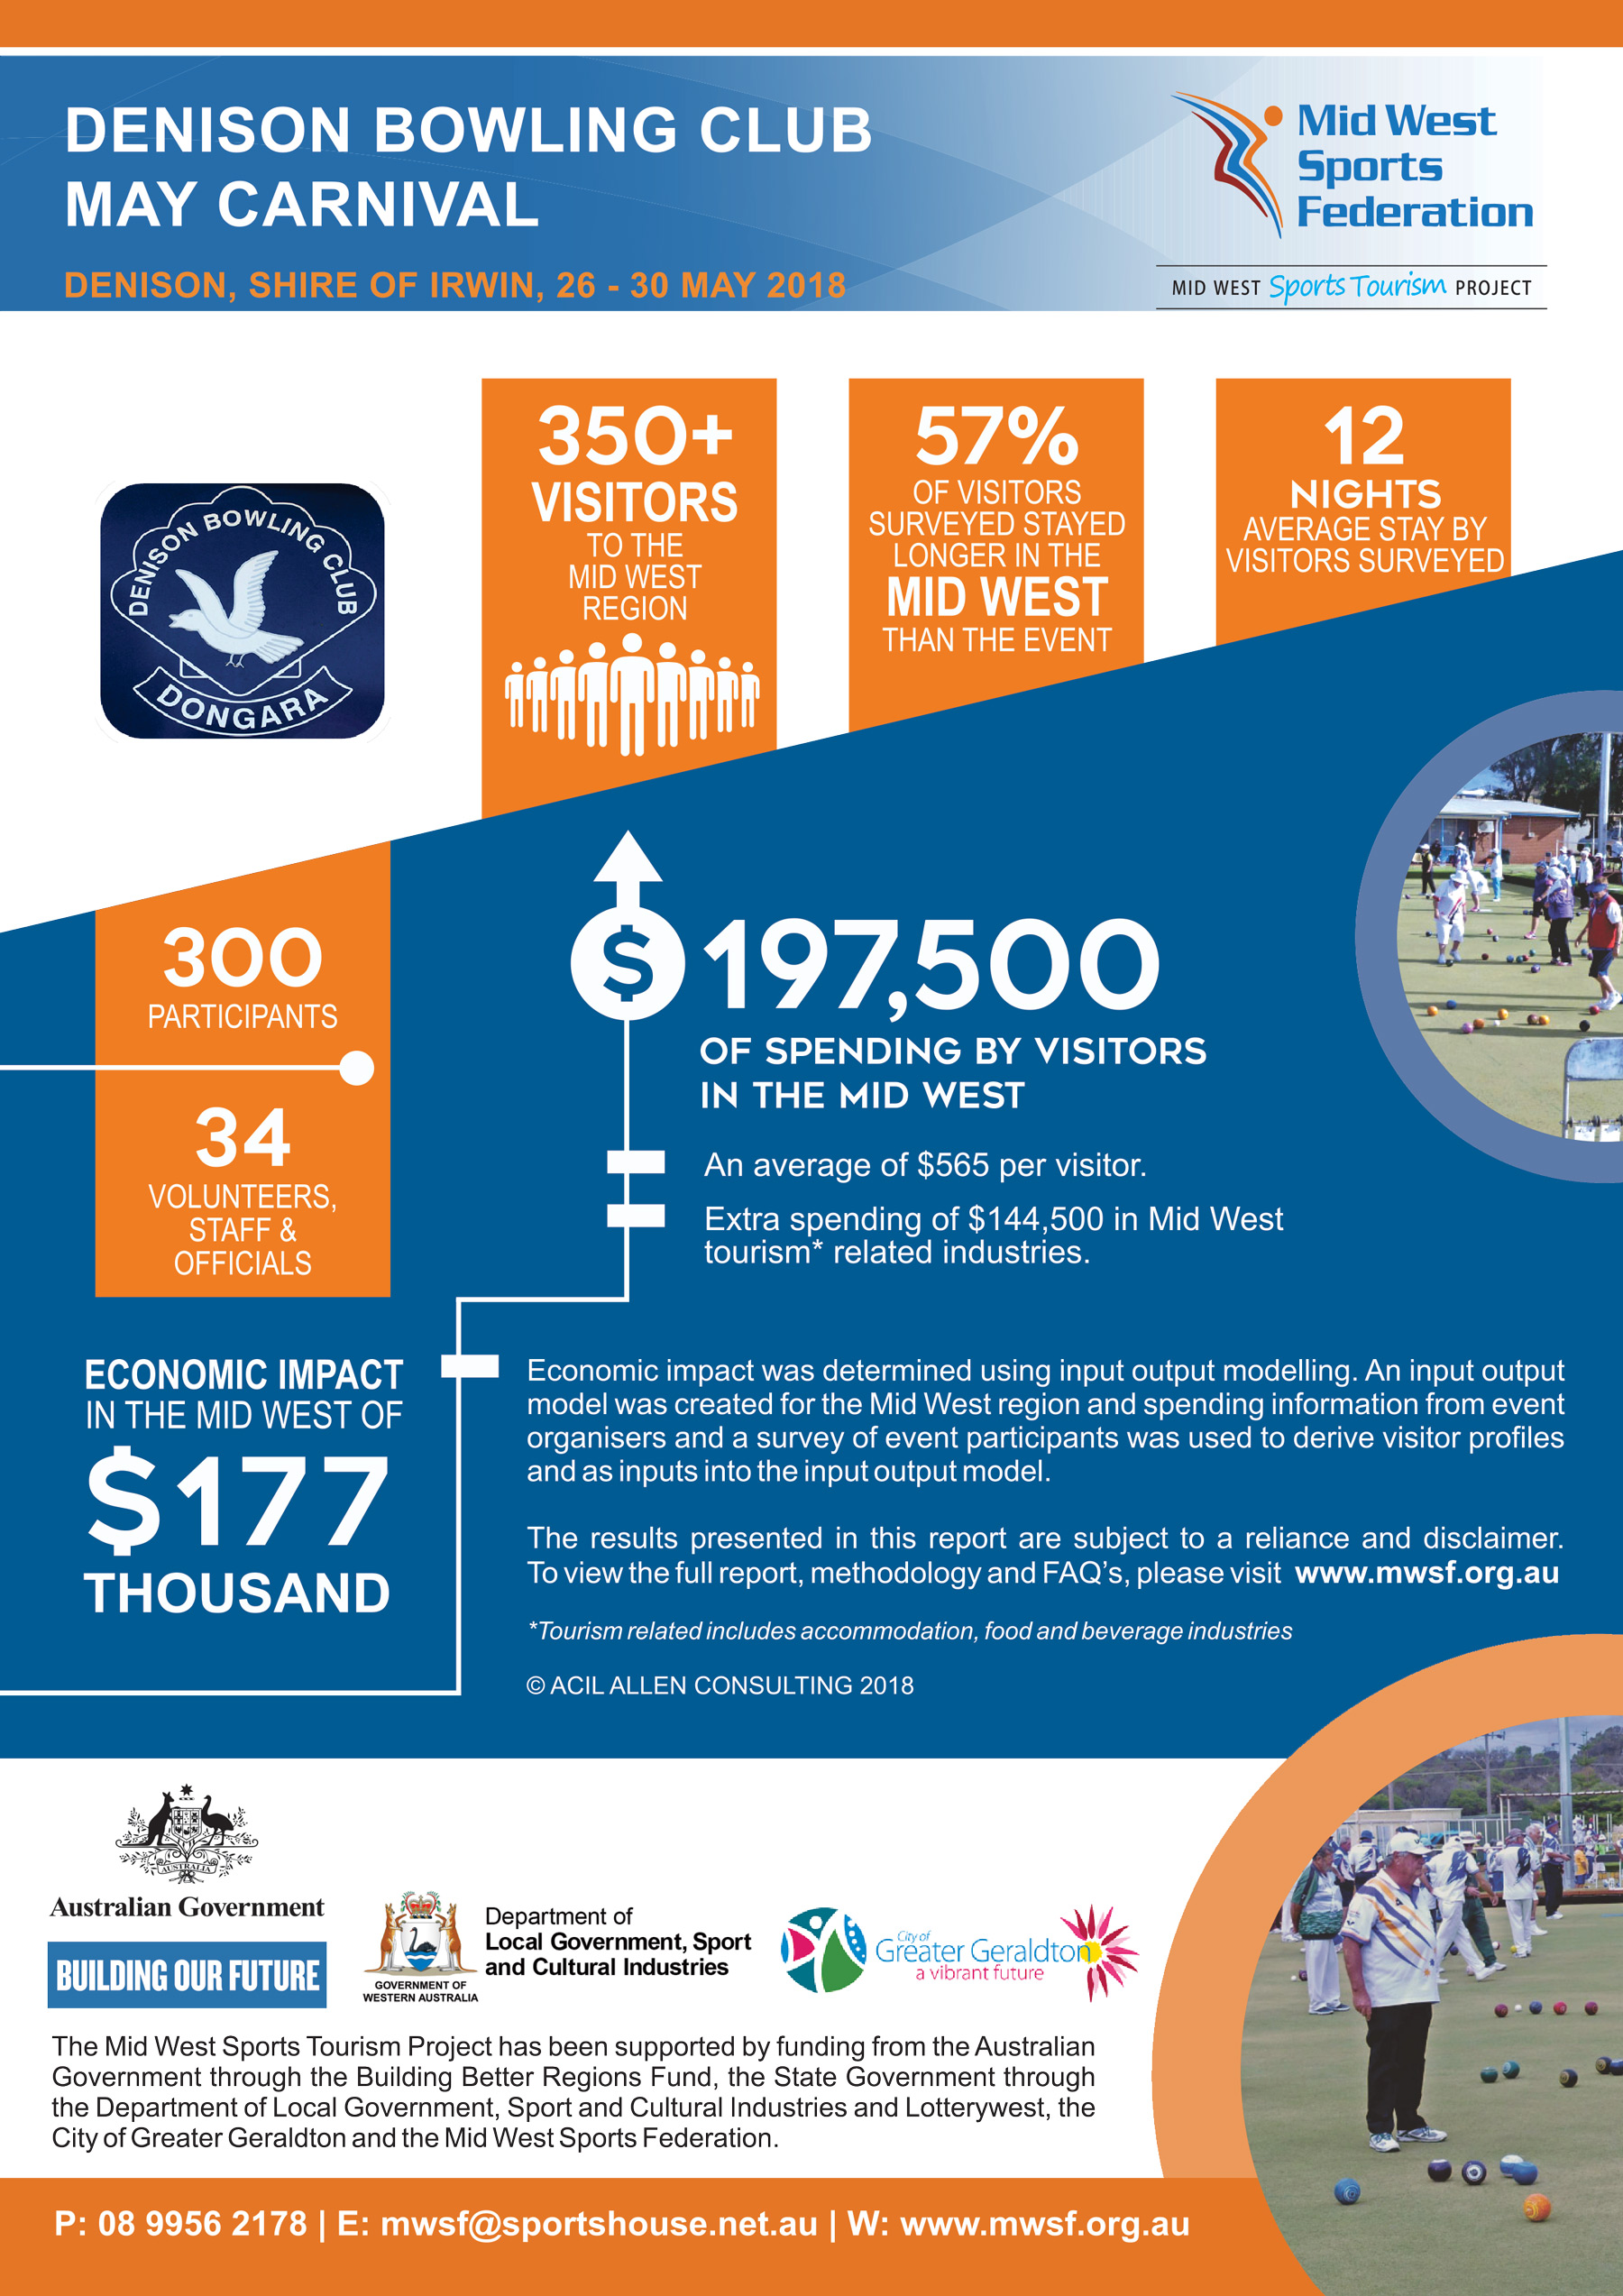 MWSF Lawn Bowls Infographic